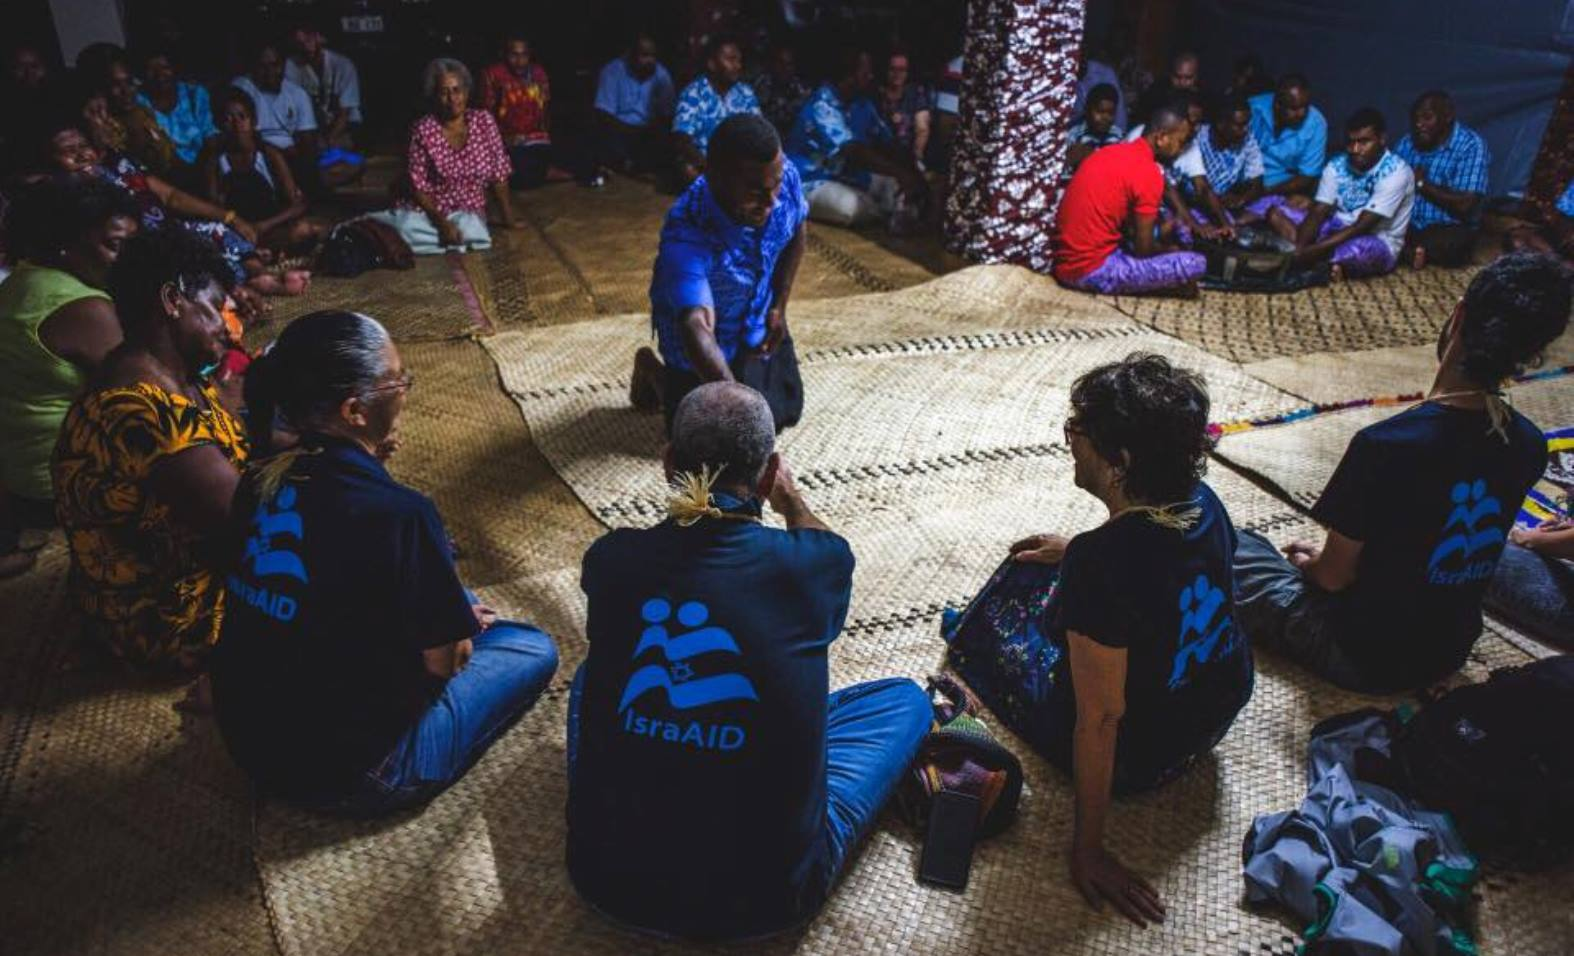 IsraAID is providing psychosocial support to the people of Fiji. Photo via Facebook